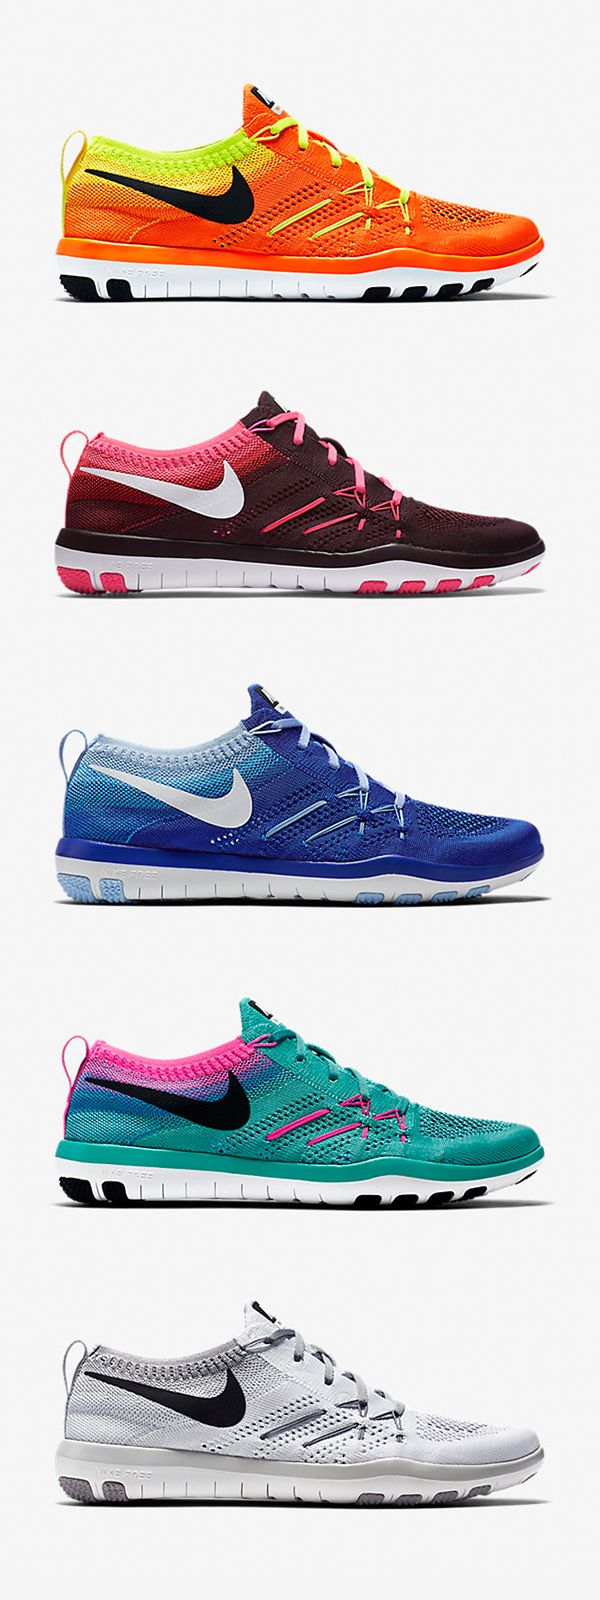 The breathable flexible Nike Free TR Focus Flyknit reps colors to